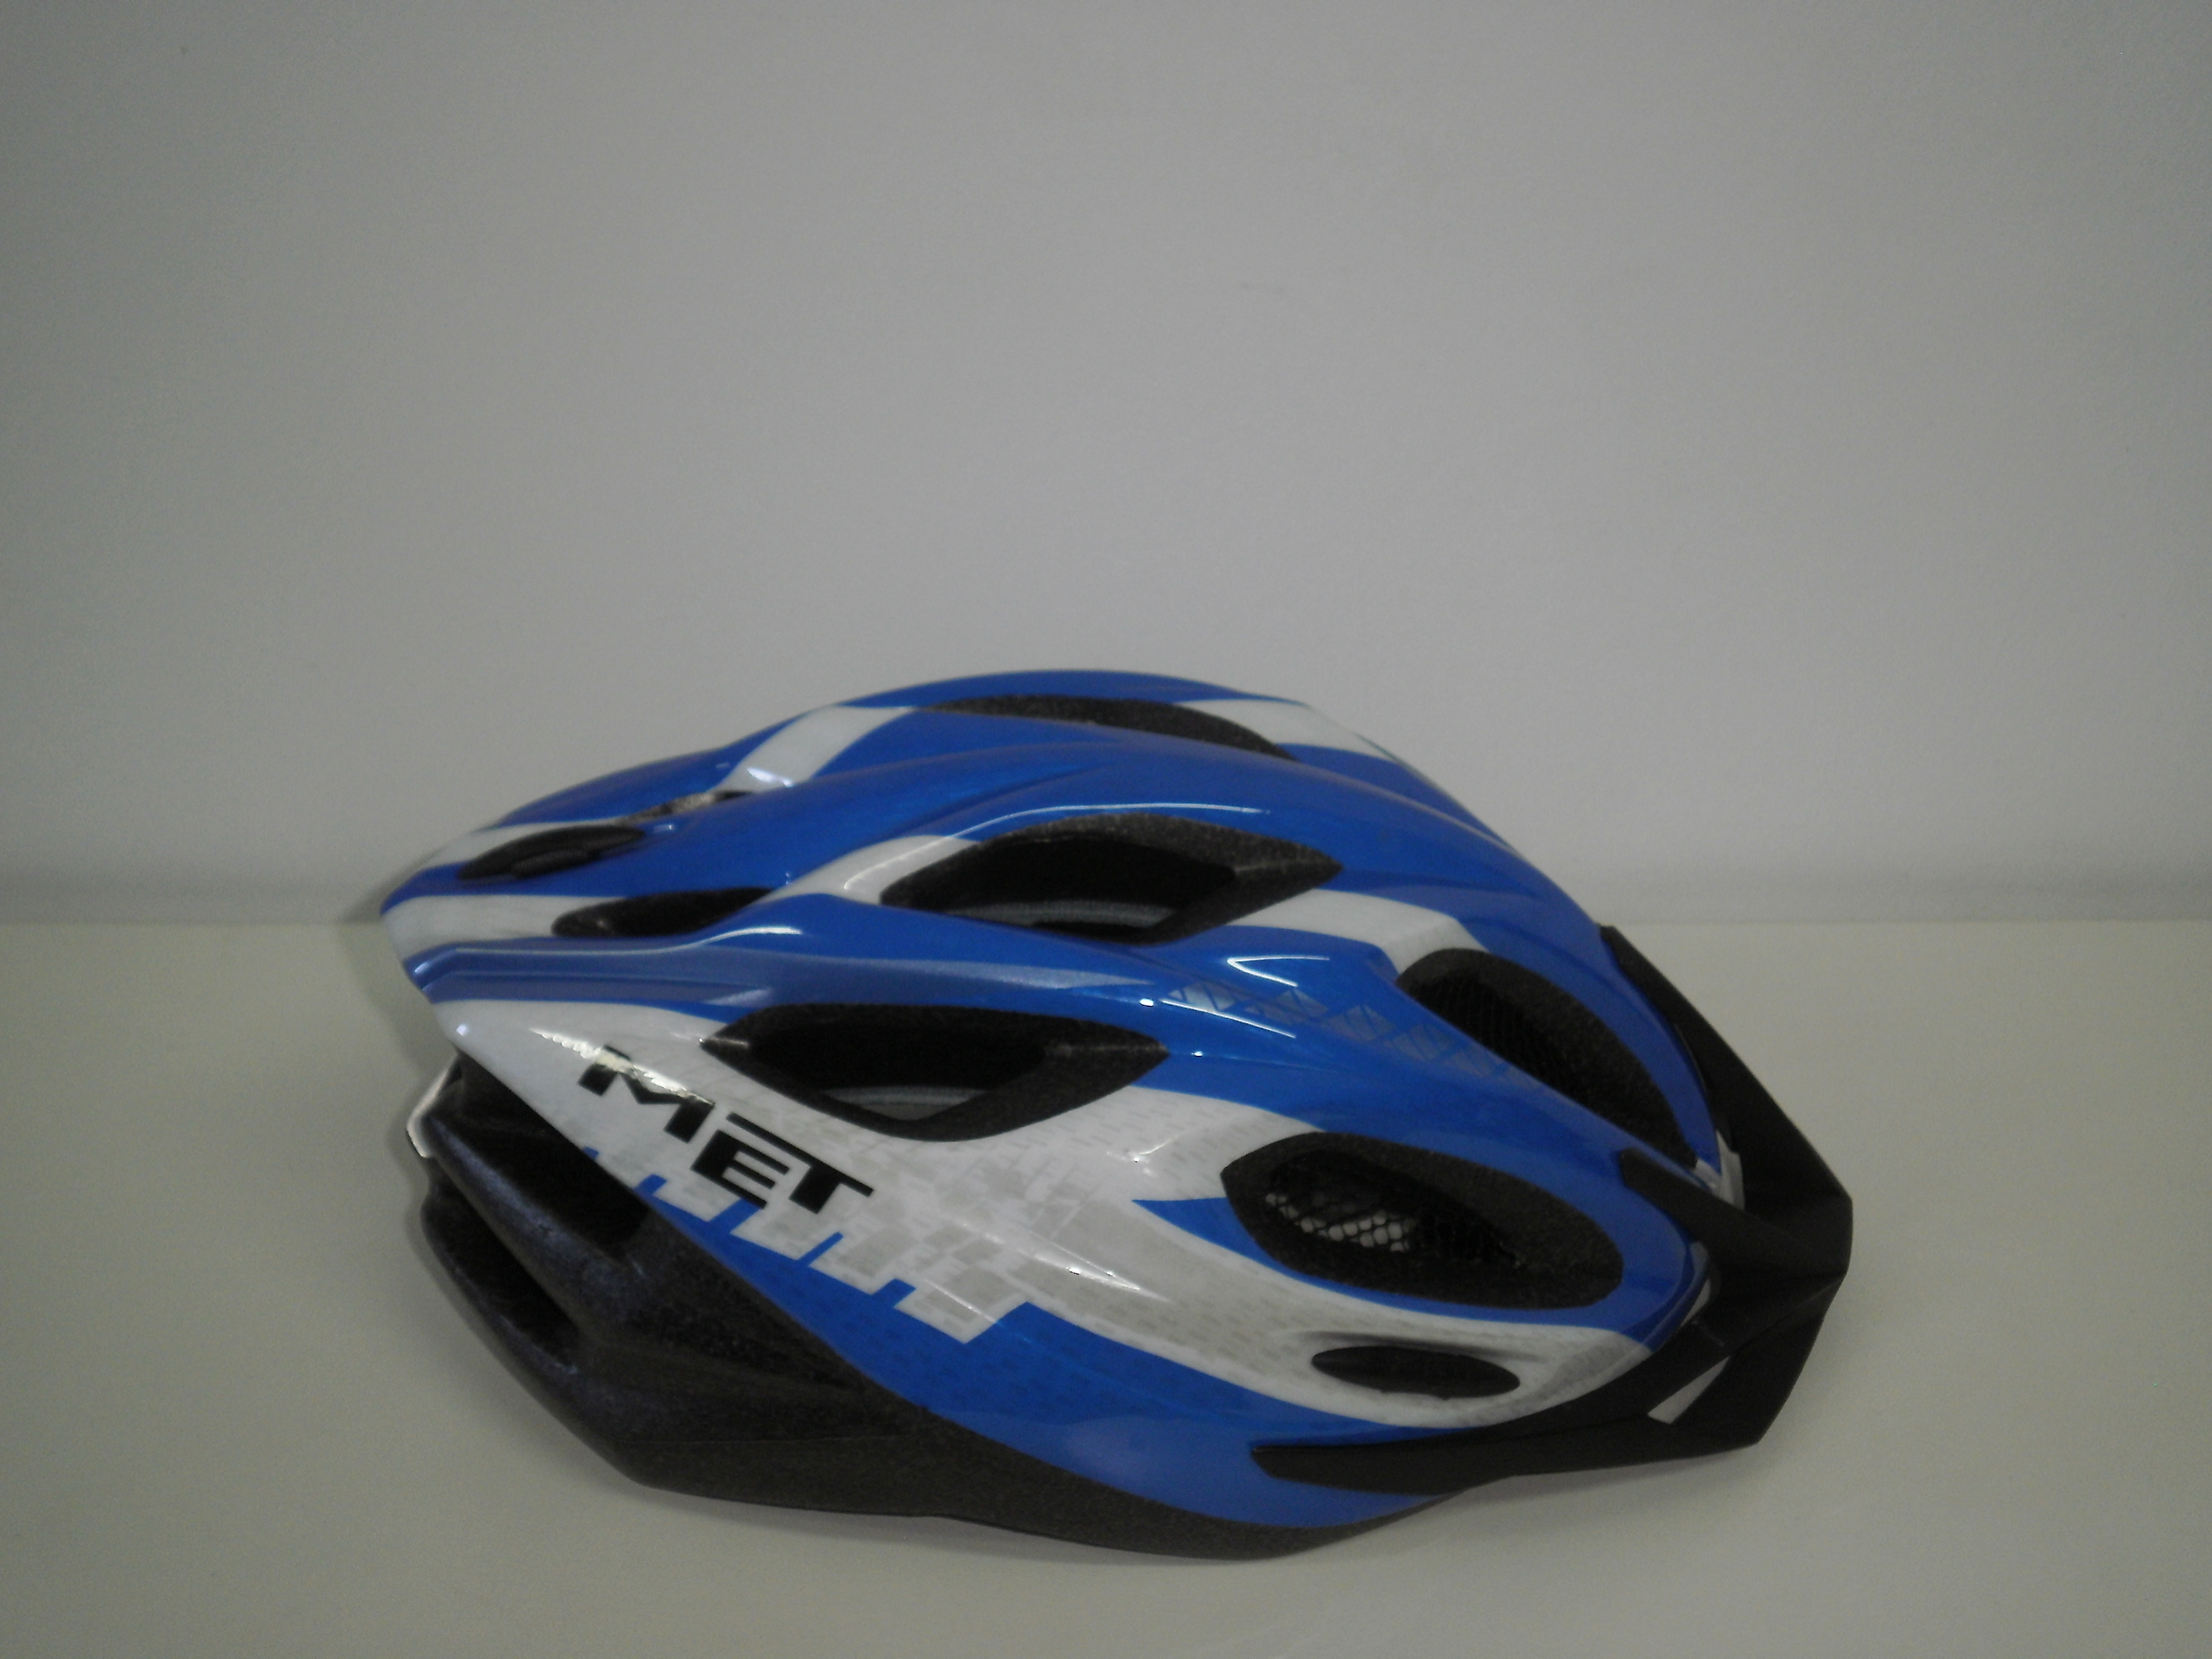 Helmet side